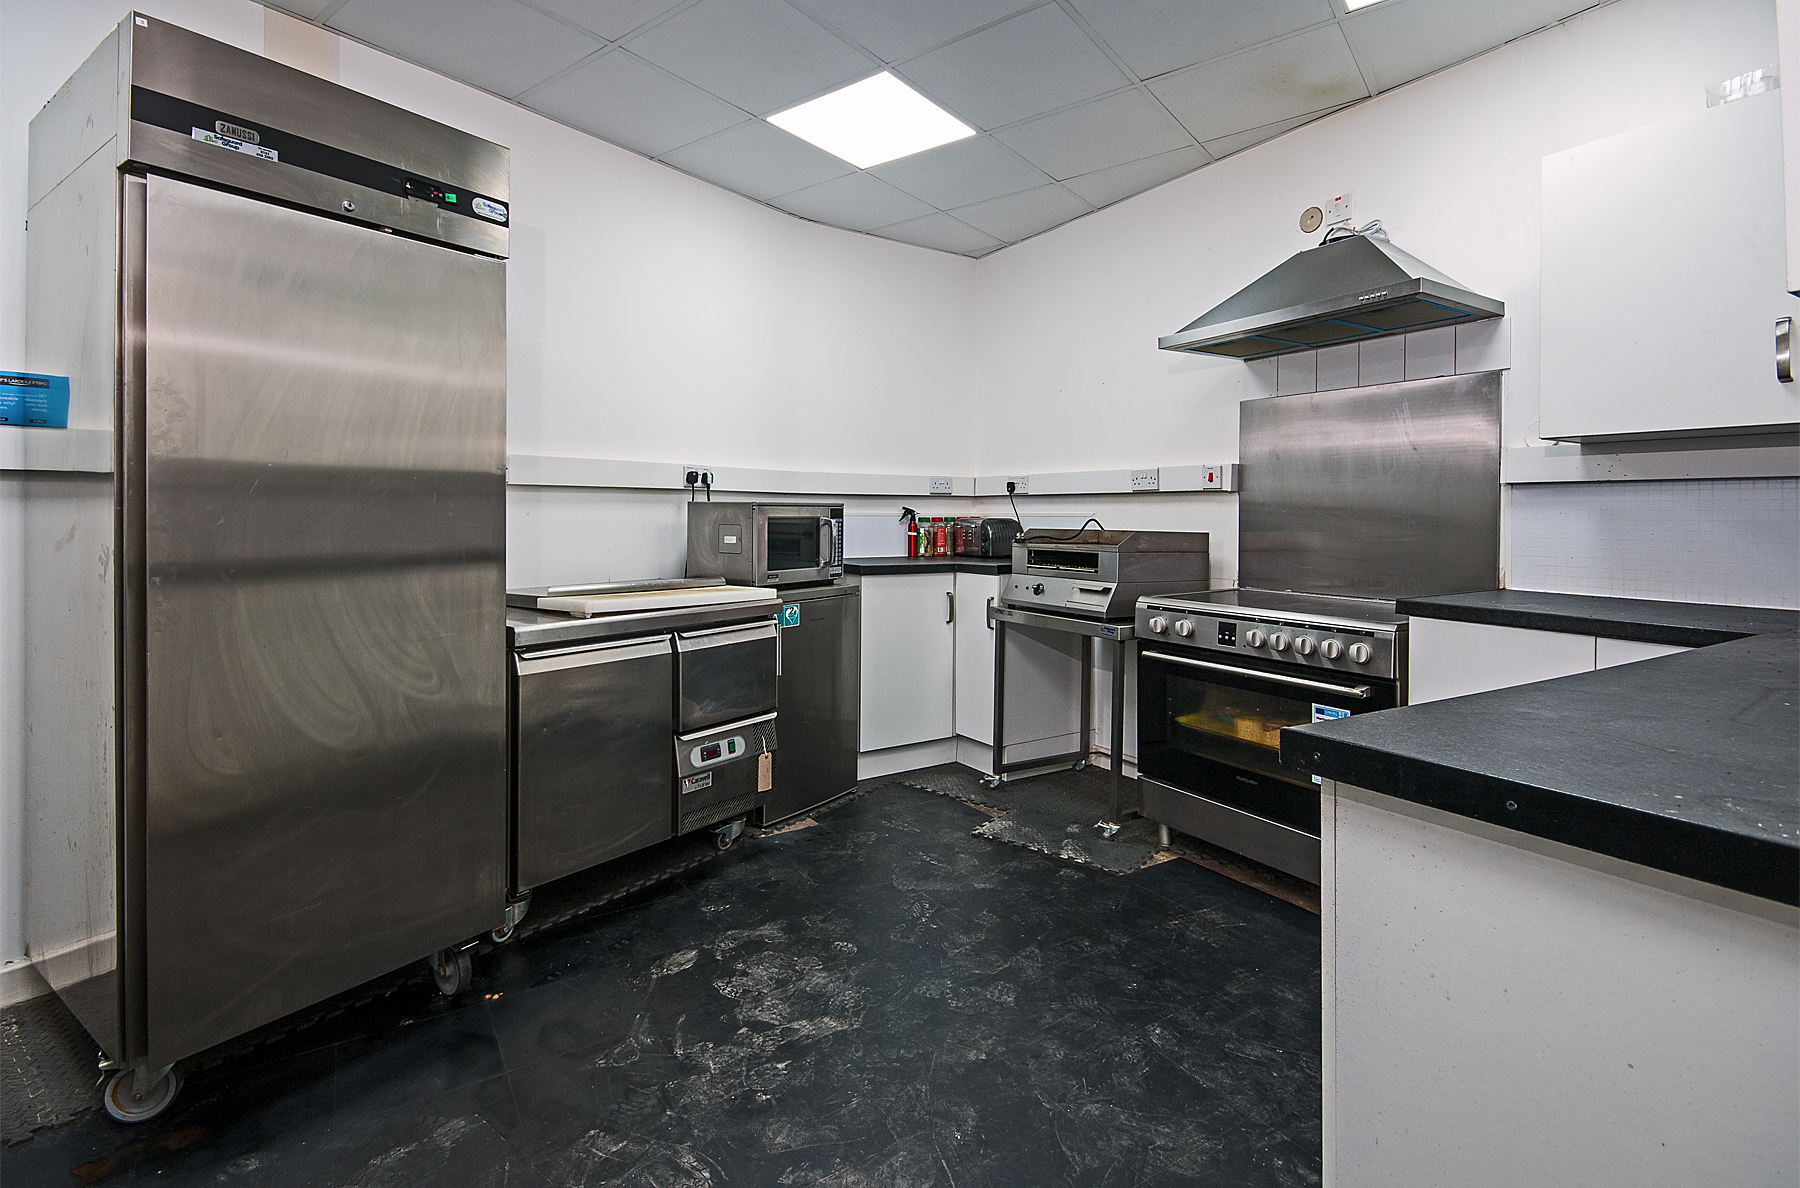 great underbank 61-65 stockport  kitchen ara.jpg